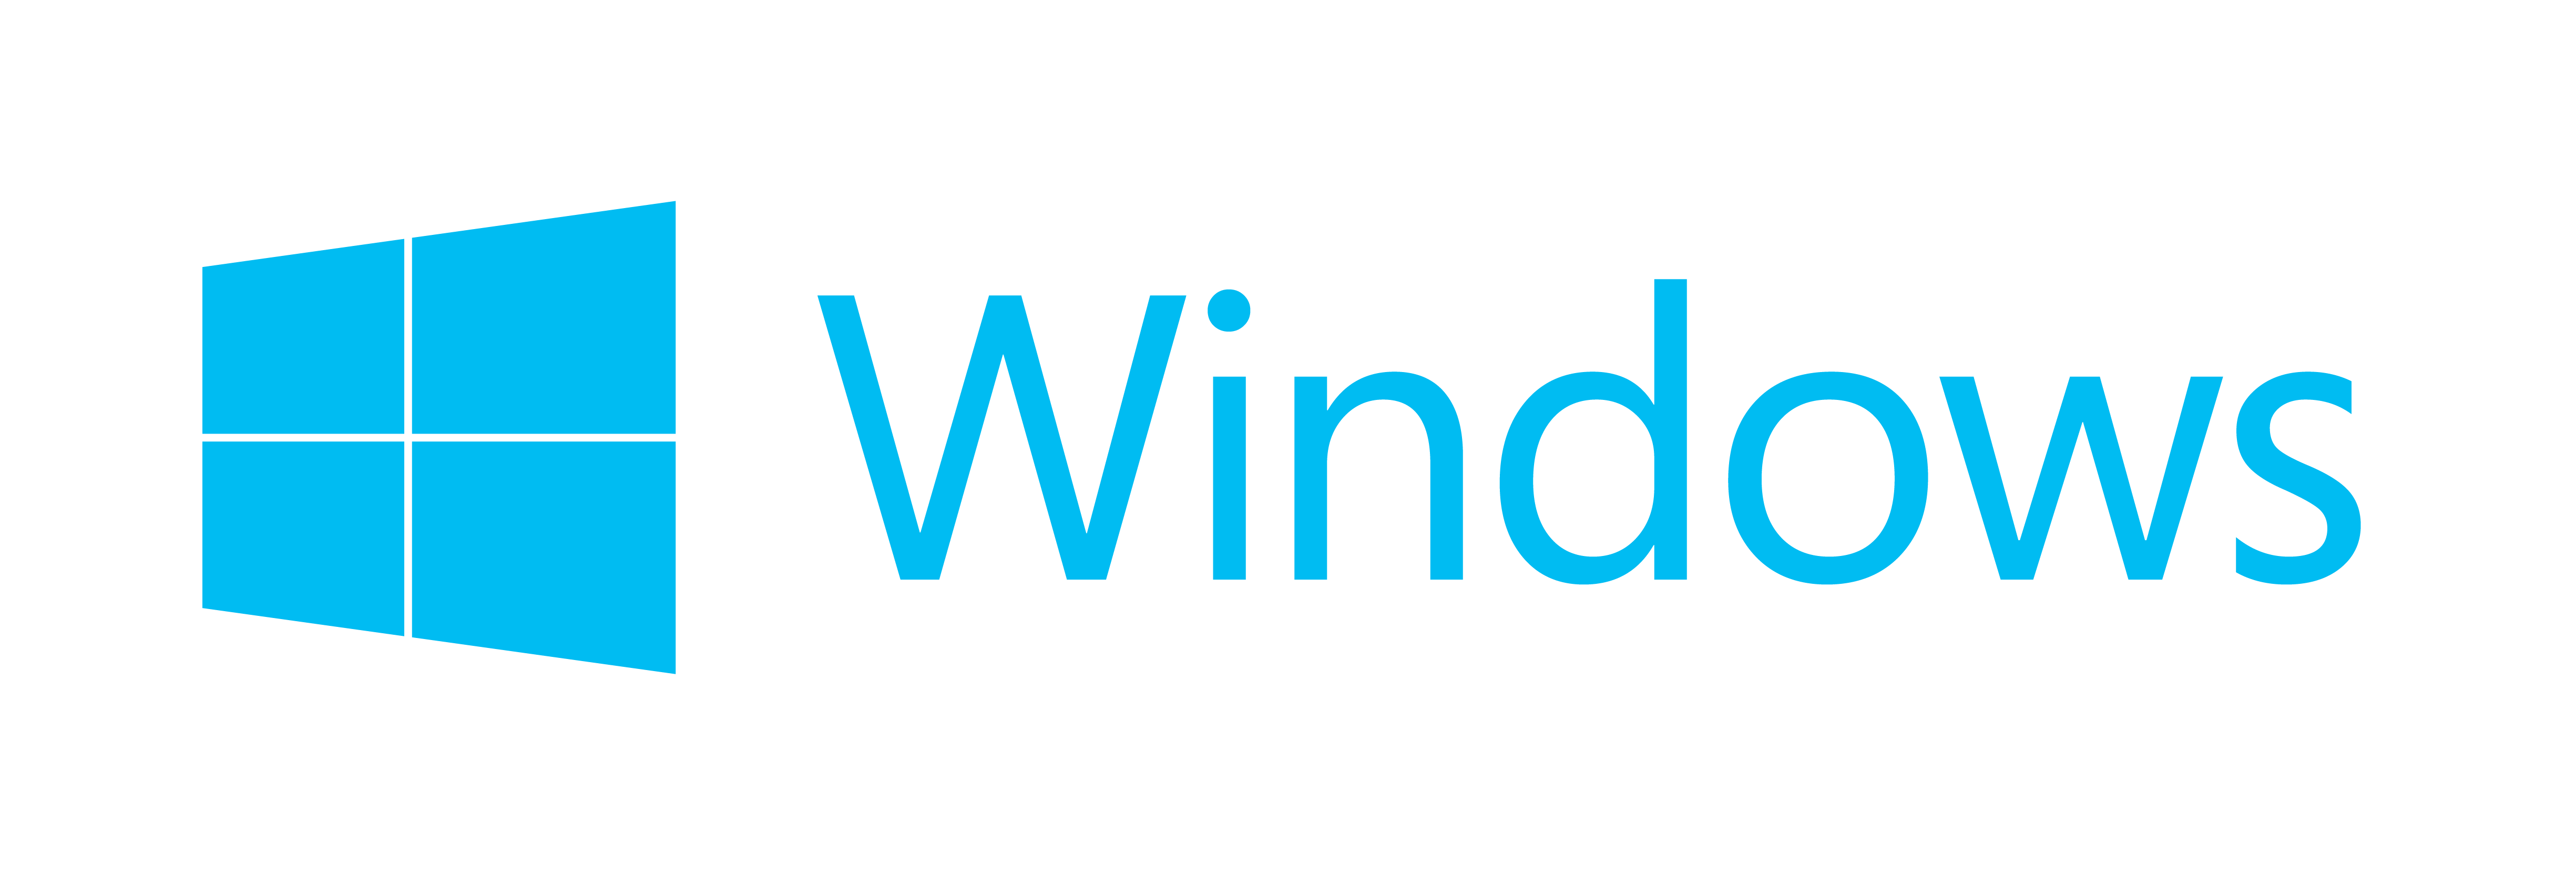 Microsoft Windows Png Clipart PNG Image - Microsoft PNG